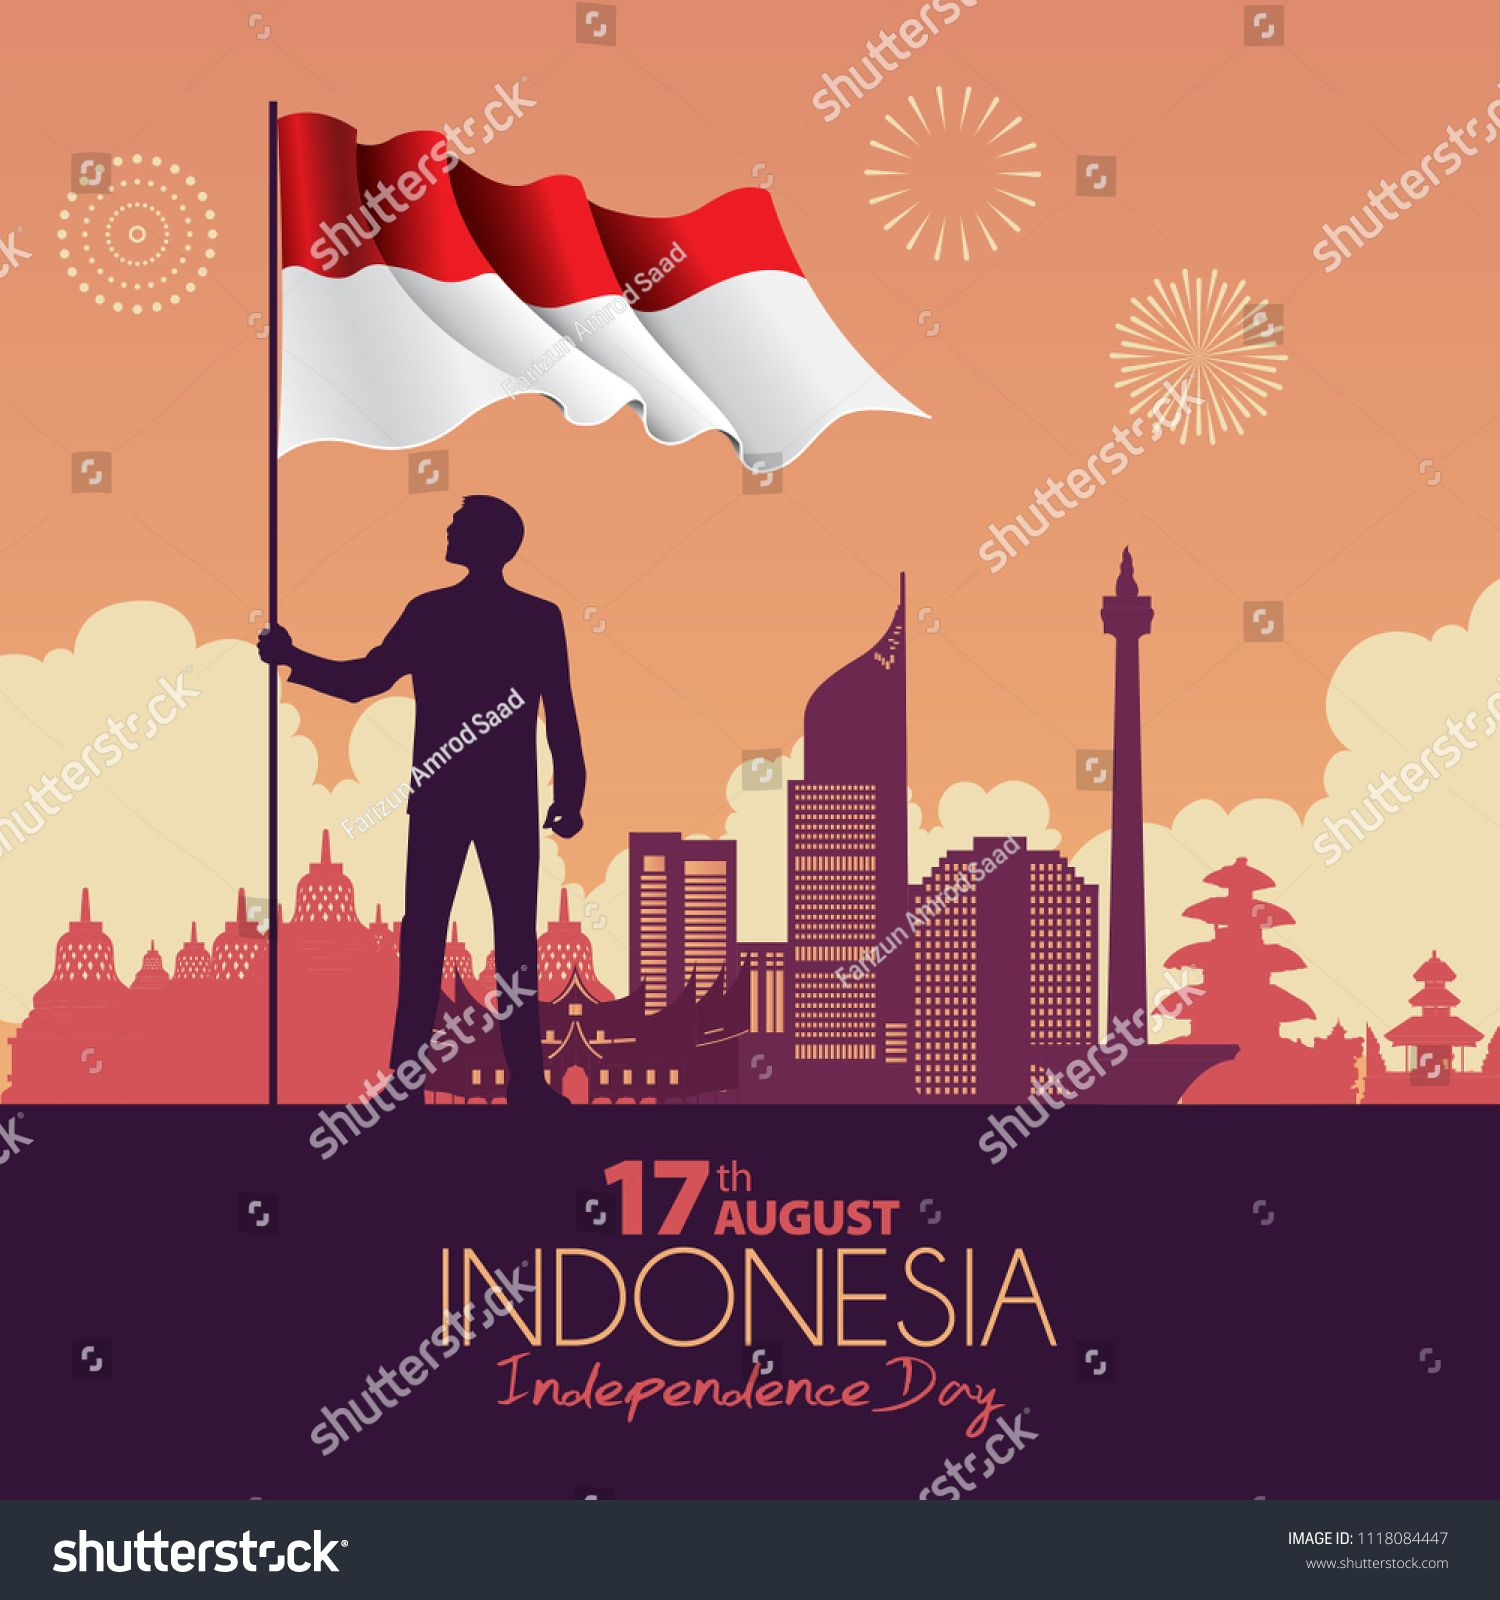 Vector illustration of a Indonesia Independence Day